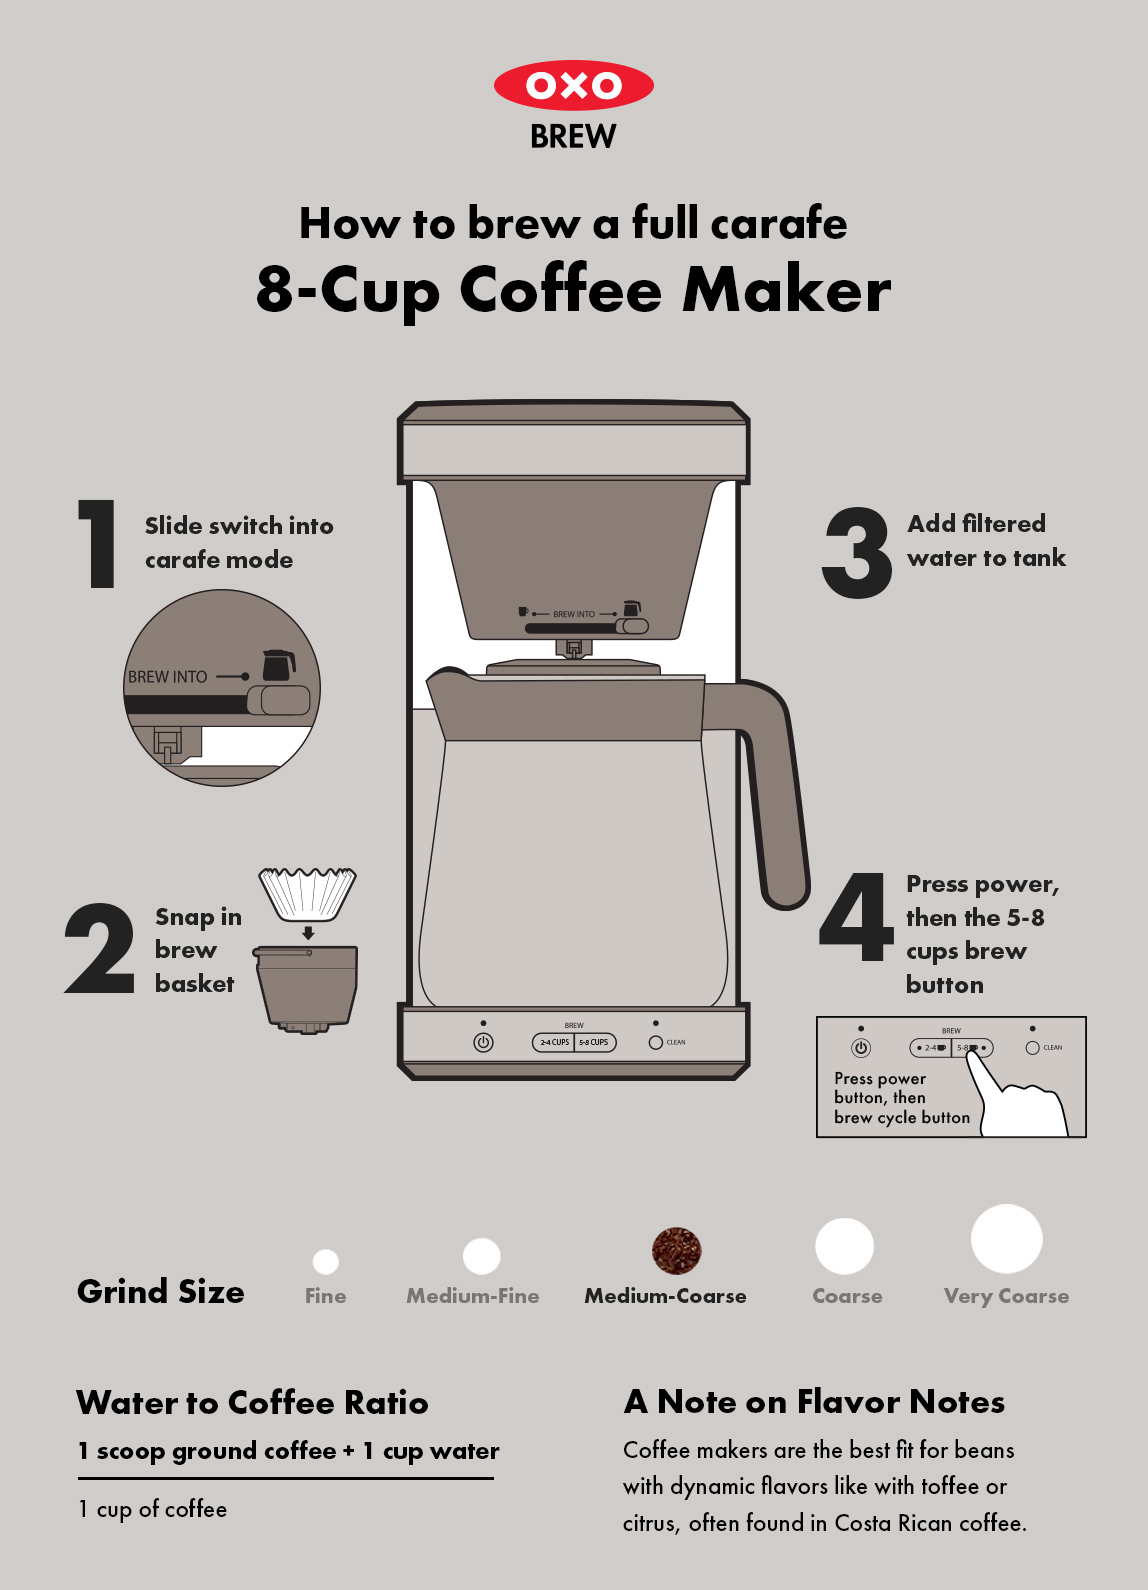 How to Brew Single Cup and Full Carafes with the OXO 8-Cup Coffee Maker